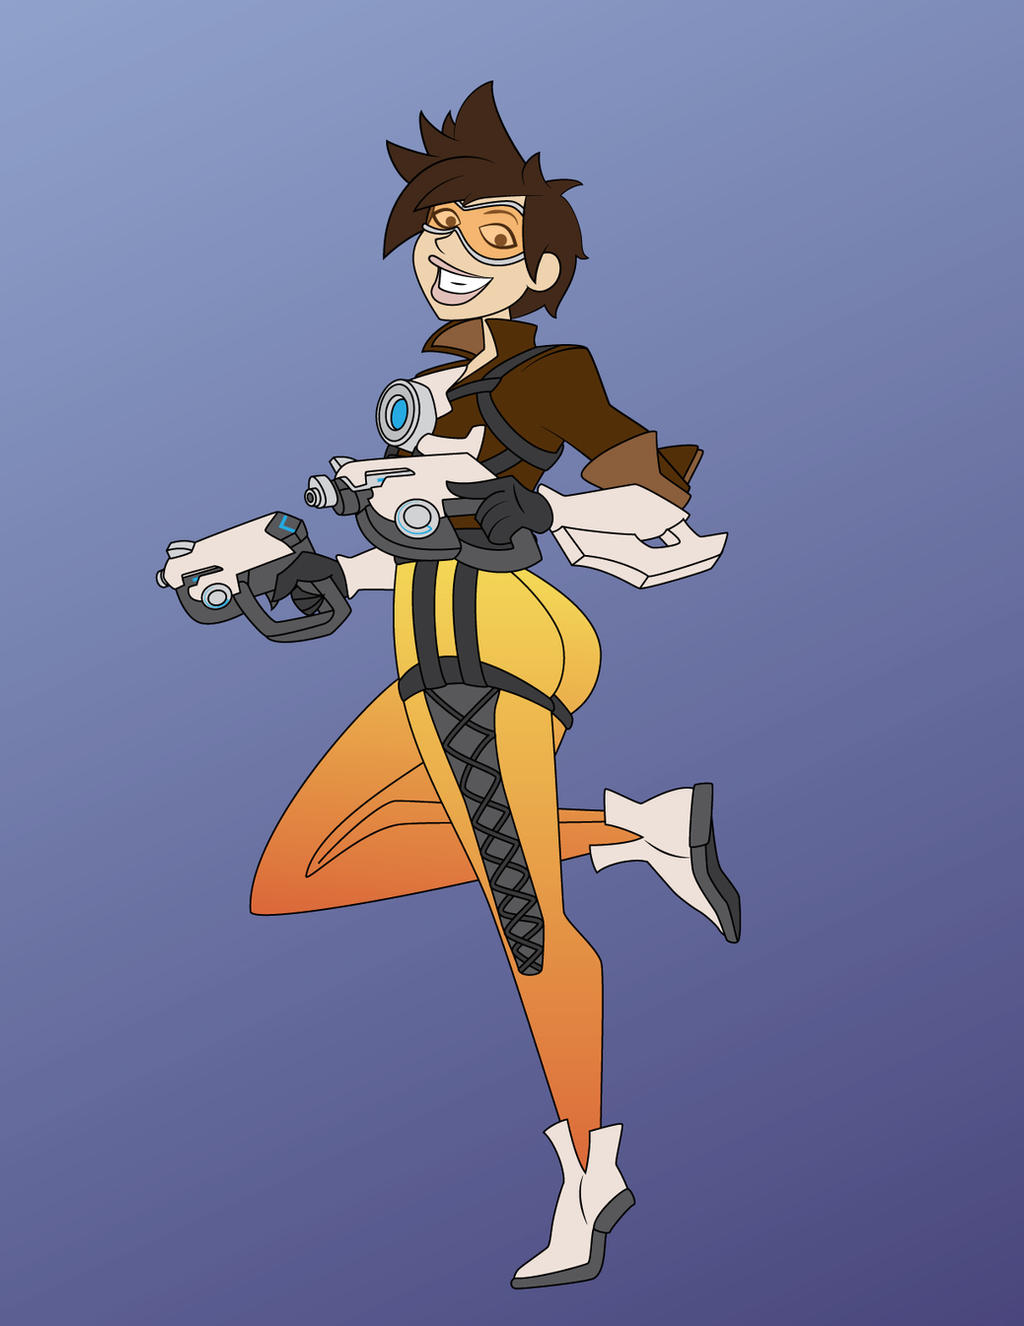 Overwatch Animated - Tracer by JK-Antwon